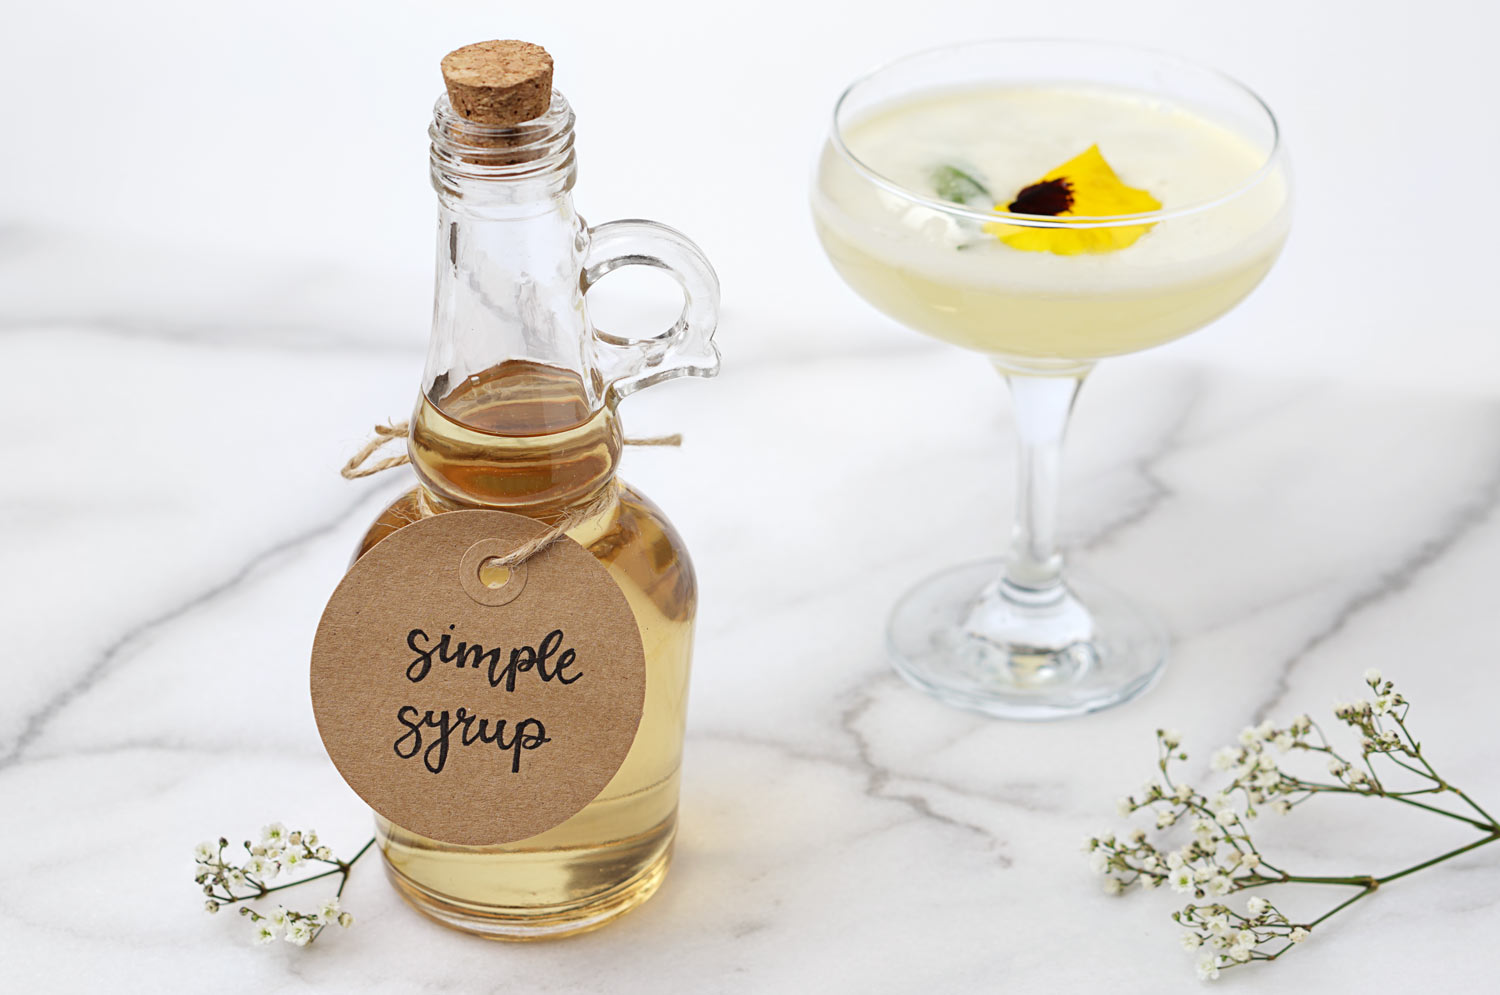 simple syrup bottle